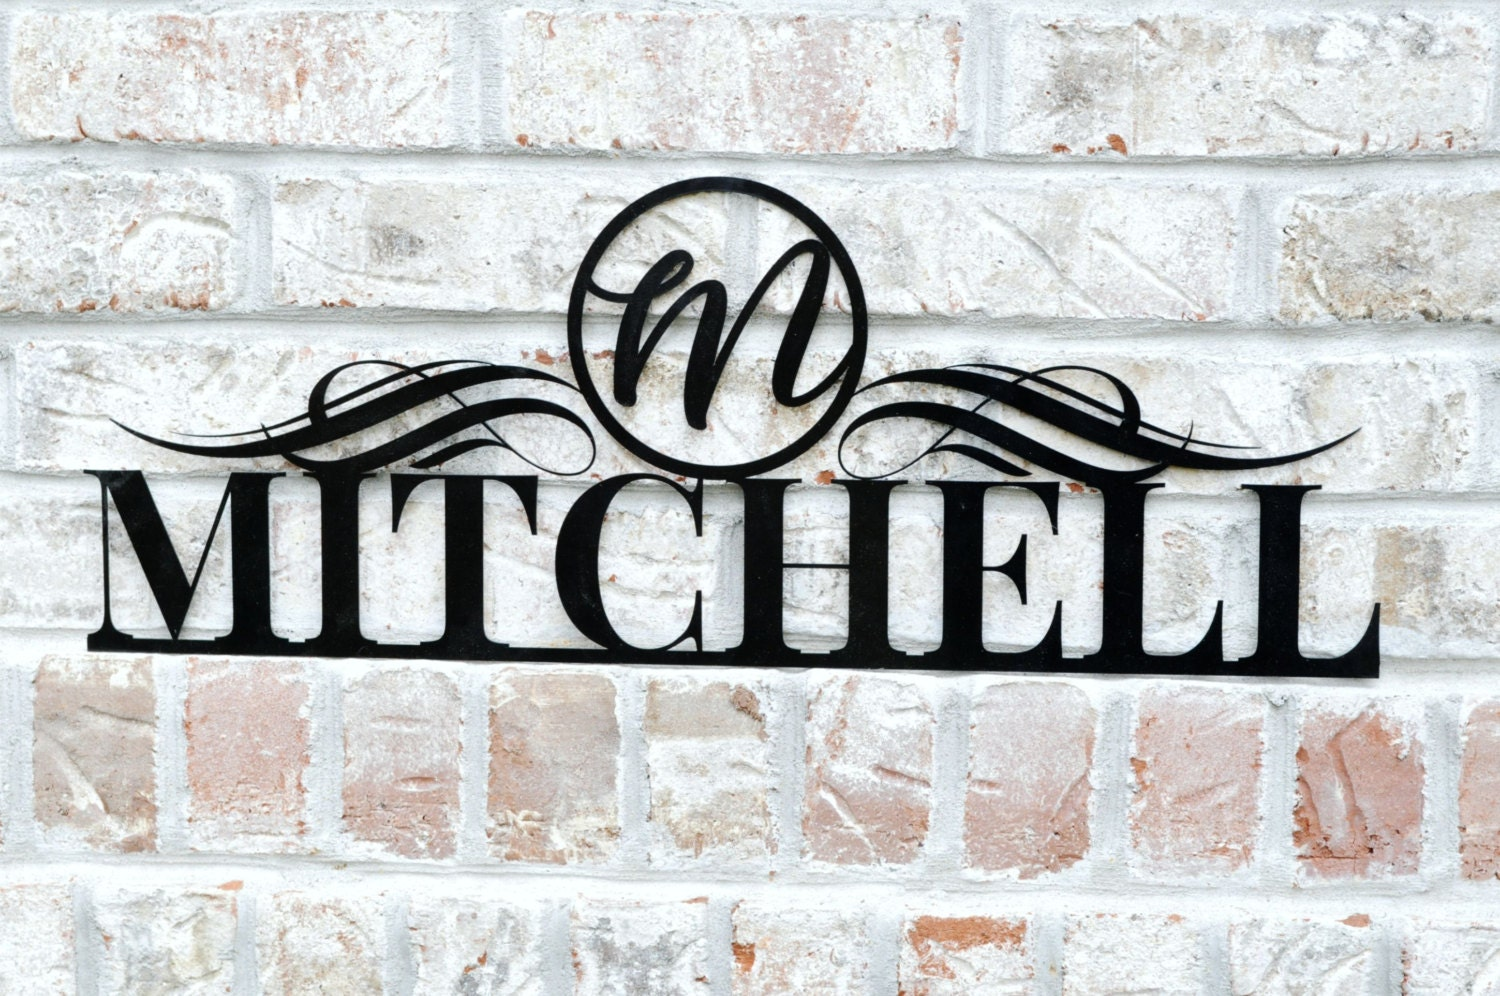 Personalized Metal Cutout Family Name Sign For Outdoor Use. Television Services In My Area. Pest Control West Palm Beach. Vanderbilt Pain Management Set Up Debit Card. Personal Injury Lawyer Denver Colorado. Online Dental Assistant Course. Highest Interest Rate Money Market. Dental Hygienist Online Classes. Best Color Printer For Home Office